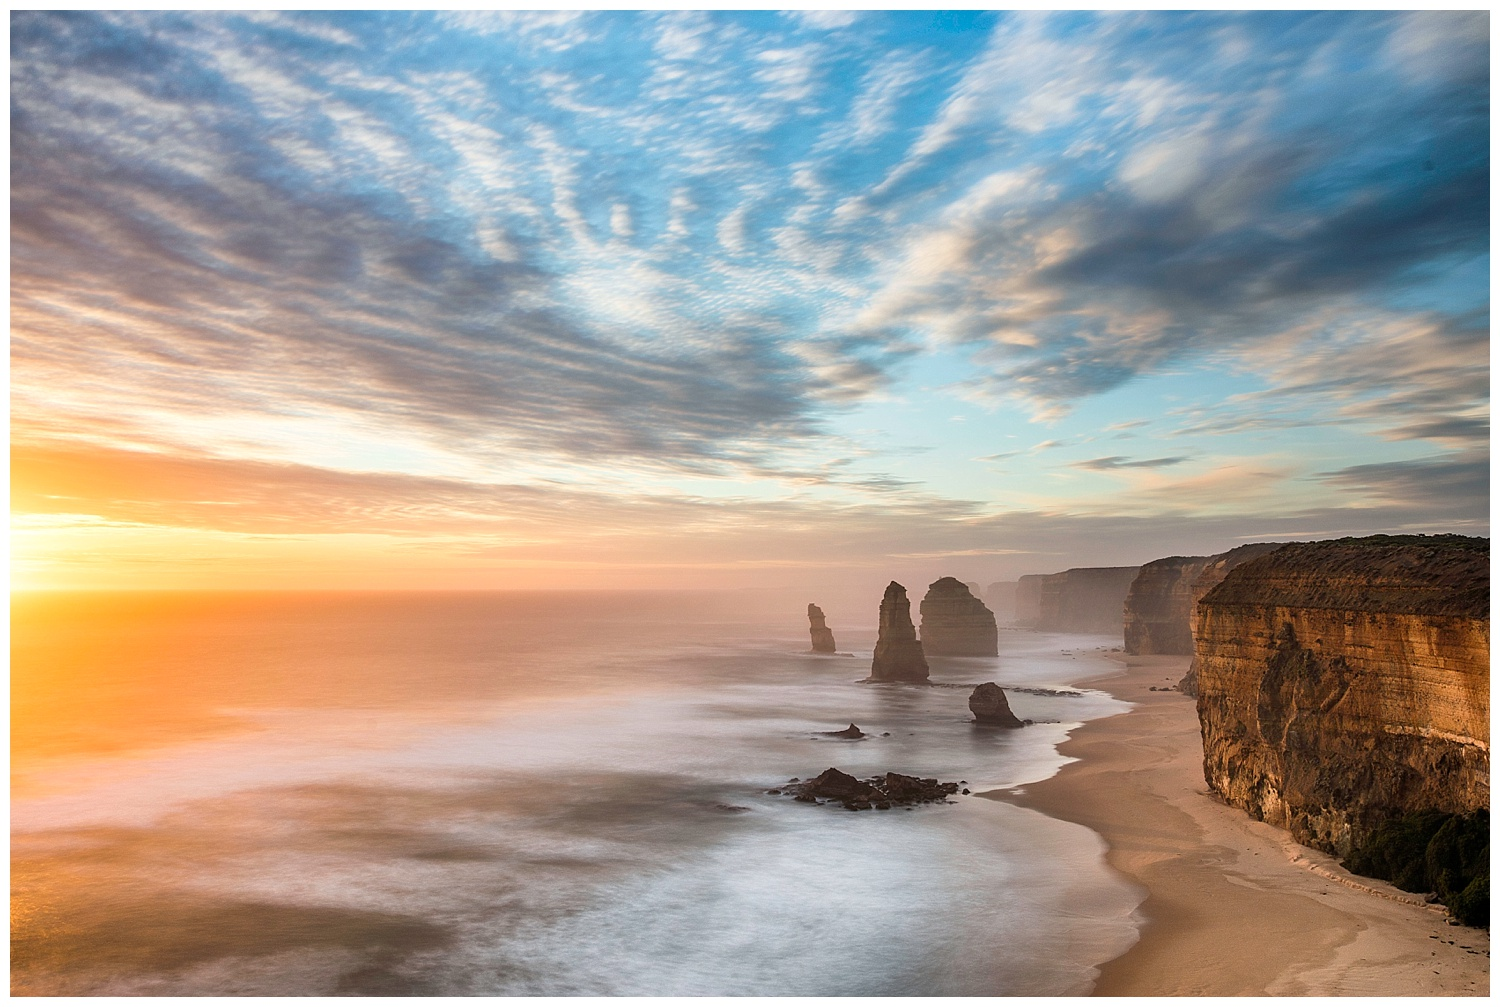 The 12 Apostles on Sunset  Canon 5D mkiv + 17-40mm f/4L @ 26mm  Hoya 10 stop ND filter  30seconds  f/10  ISO 100